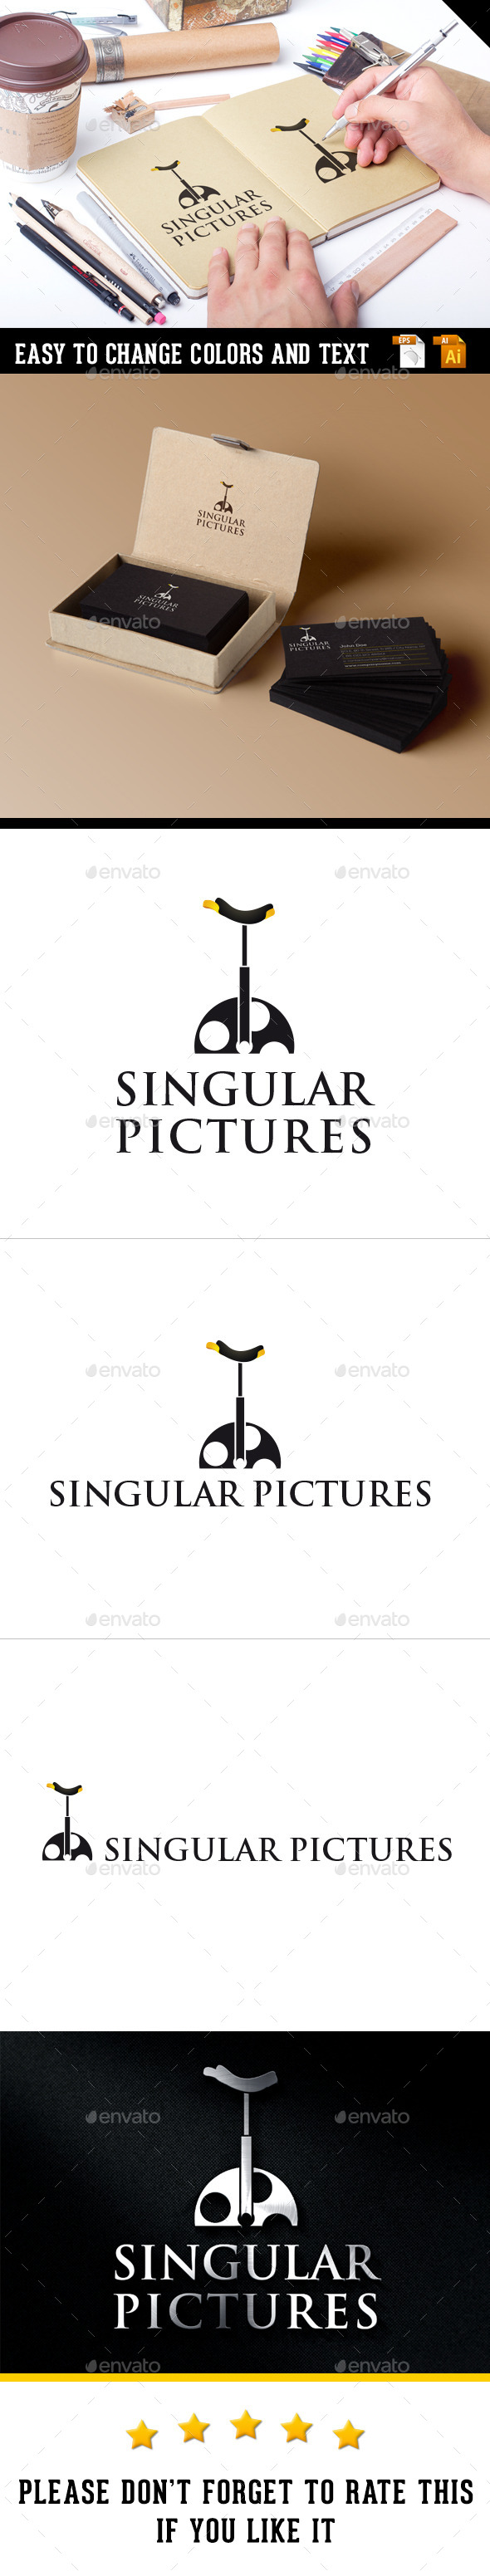 Singular Pictures - Vector Abstract